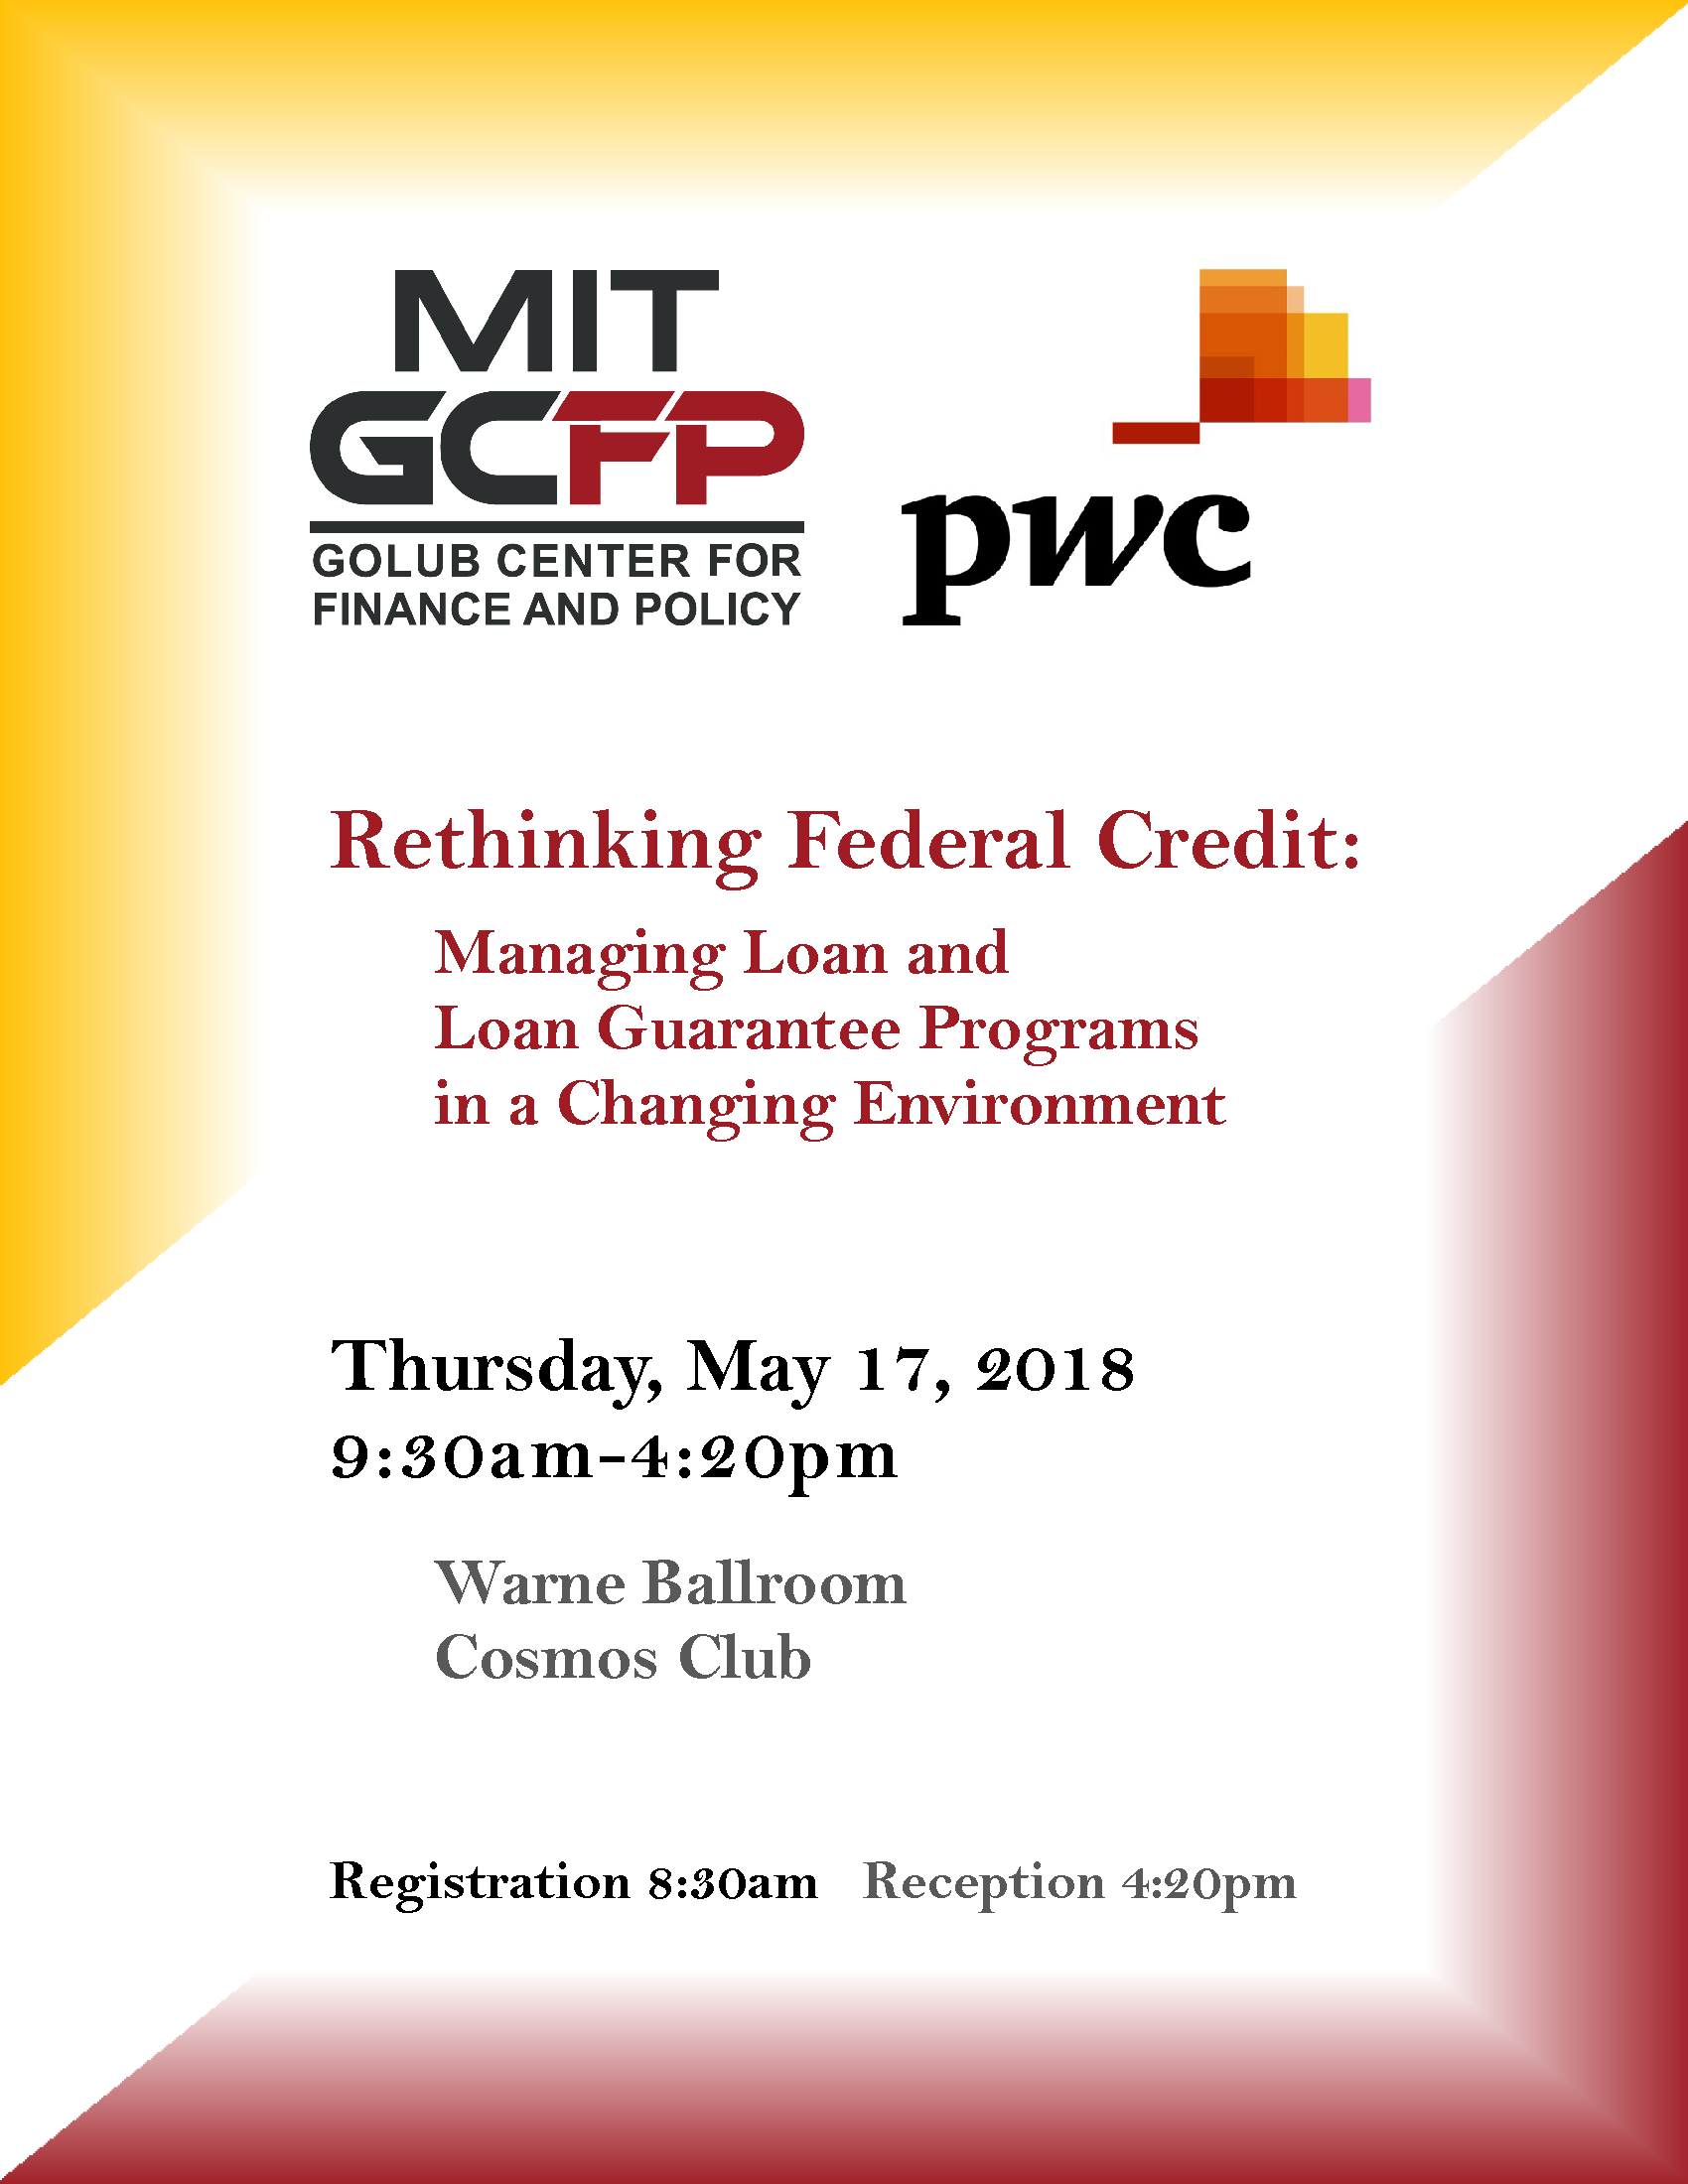 Rethinking Federal Credit: Managing Loan and Loan Guarantee Programs in a Changing Environment • Thursday, May 17, 2018 9:30am-4:20pm • Warne Ballroom, Cosmos Club • Registration 8:30am, Reception 4:20pm